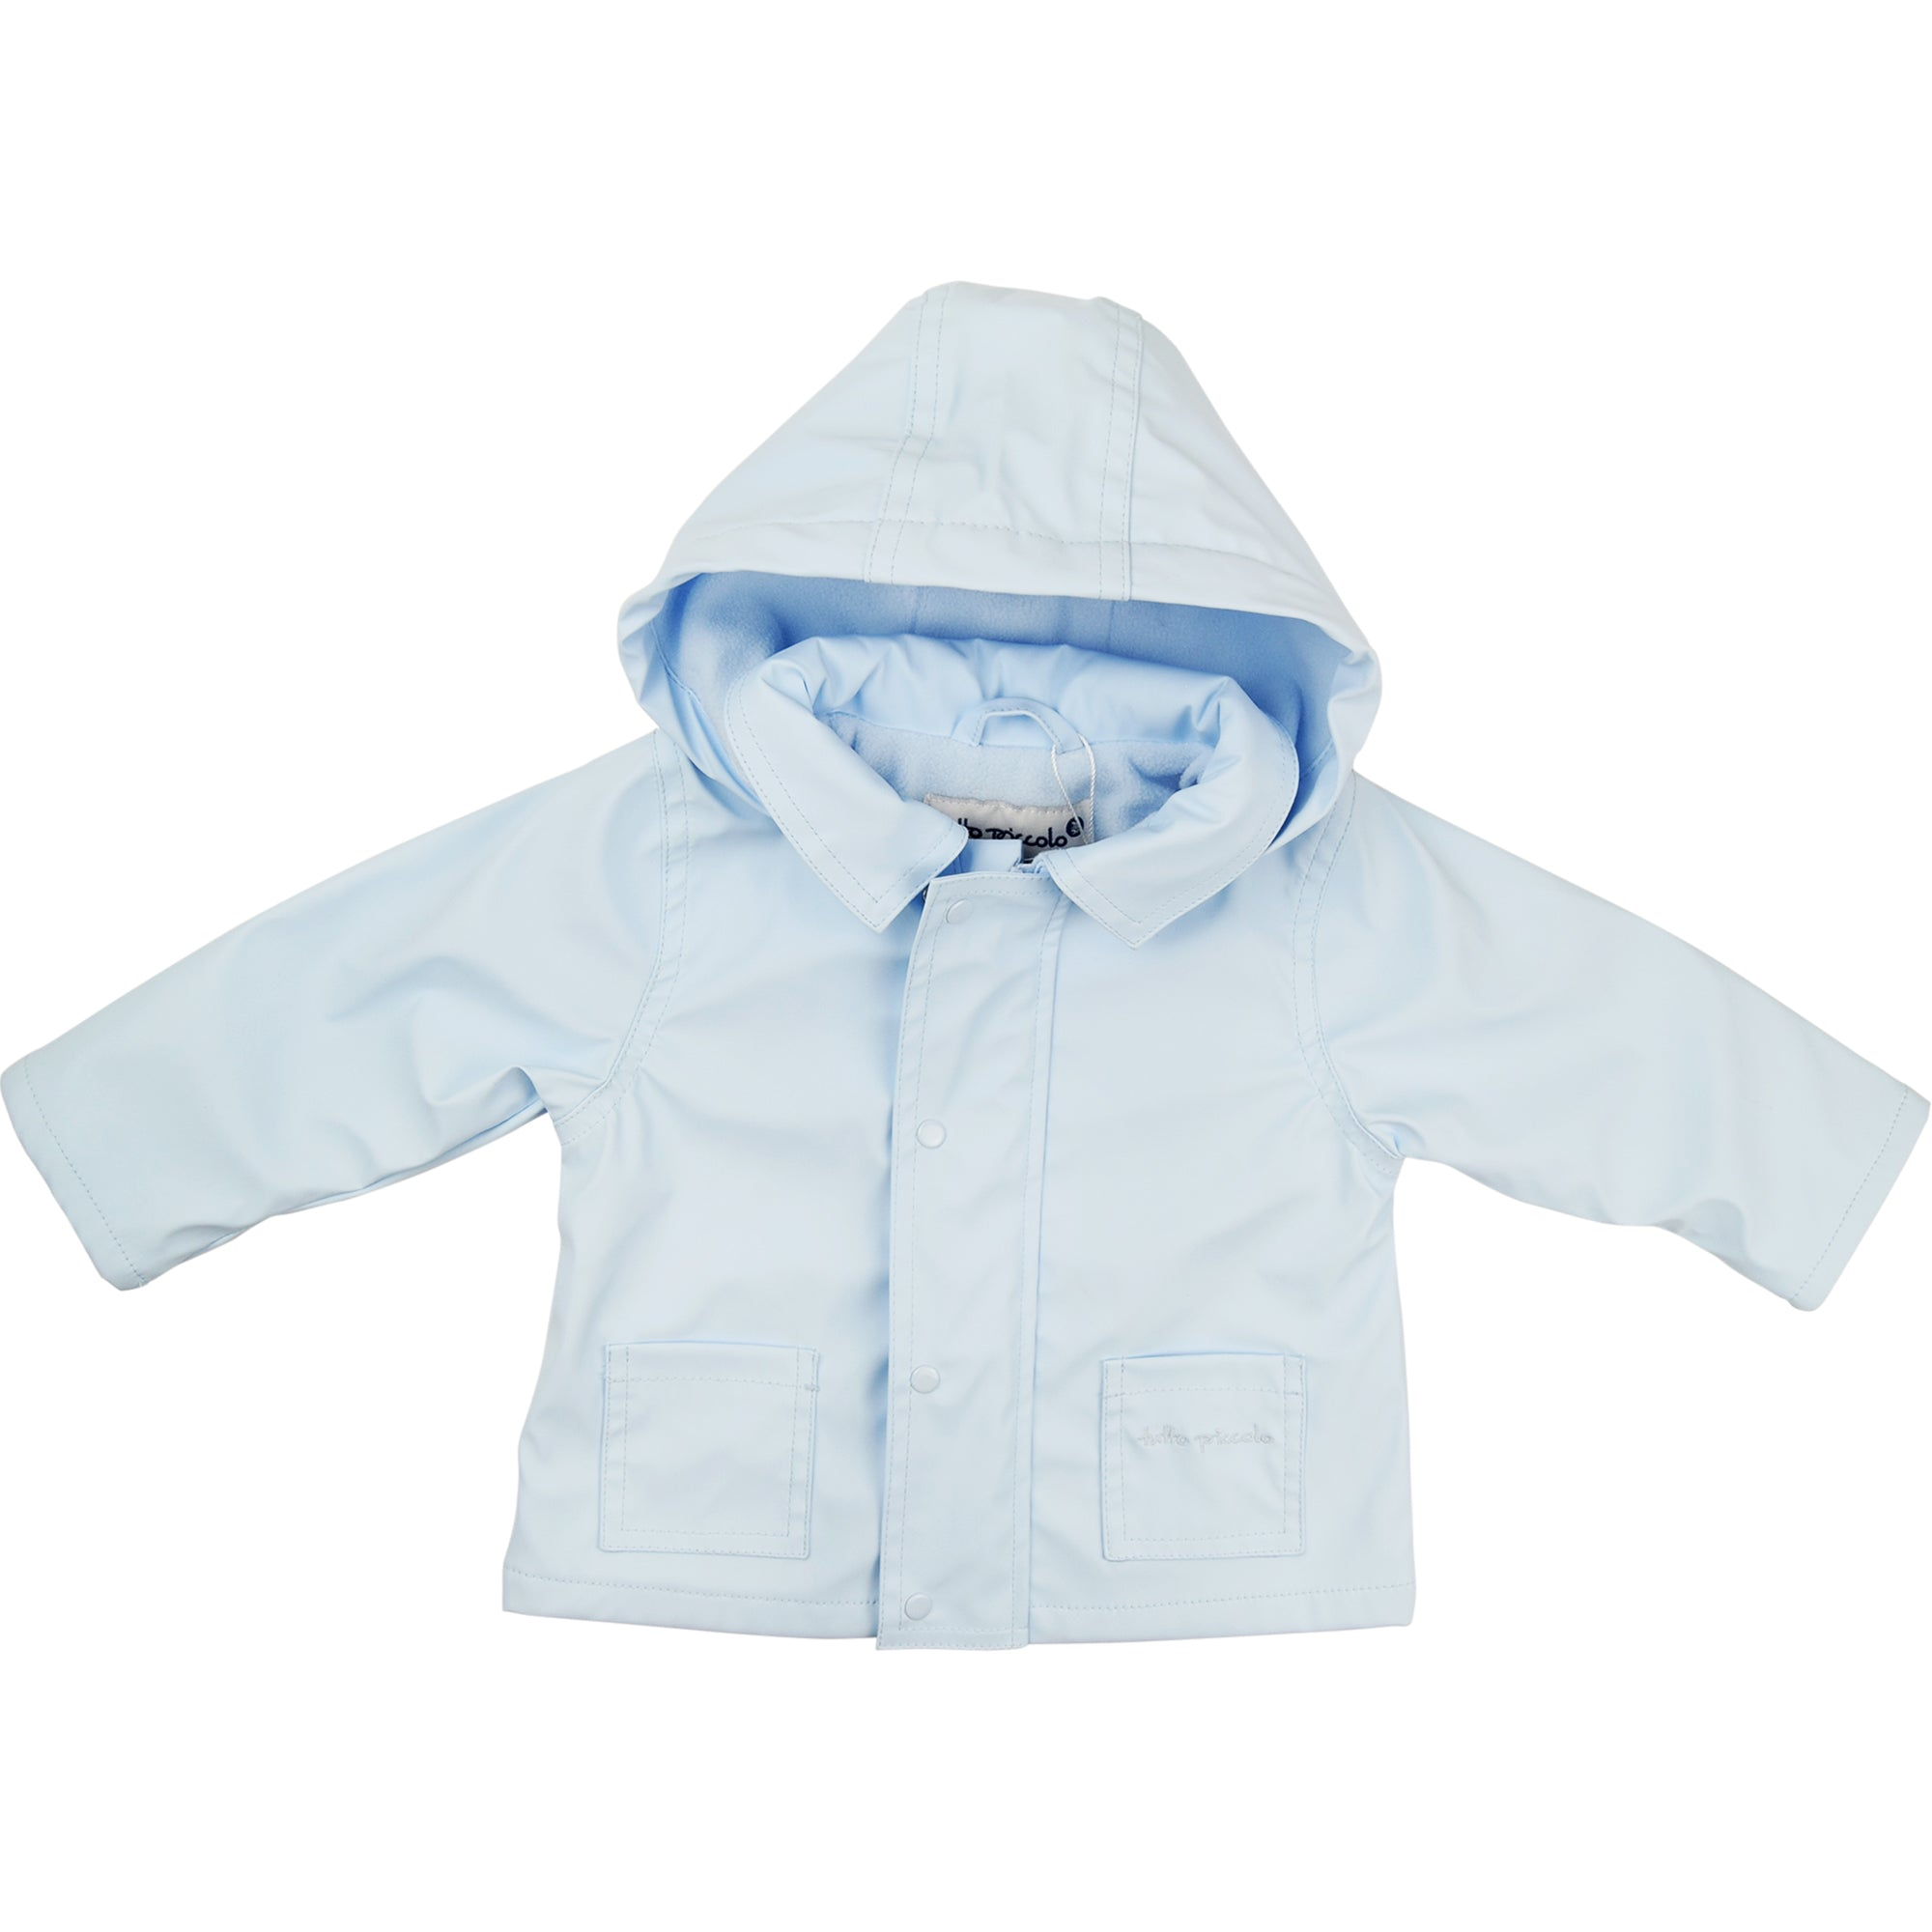 bc1fd0faf1f7 Tutto Piccolo Blue Raincoat